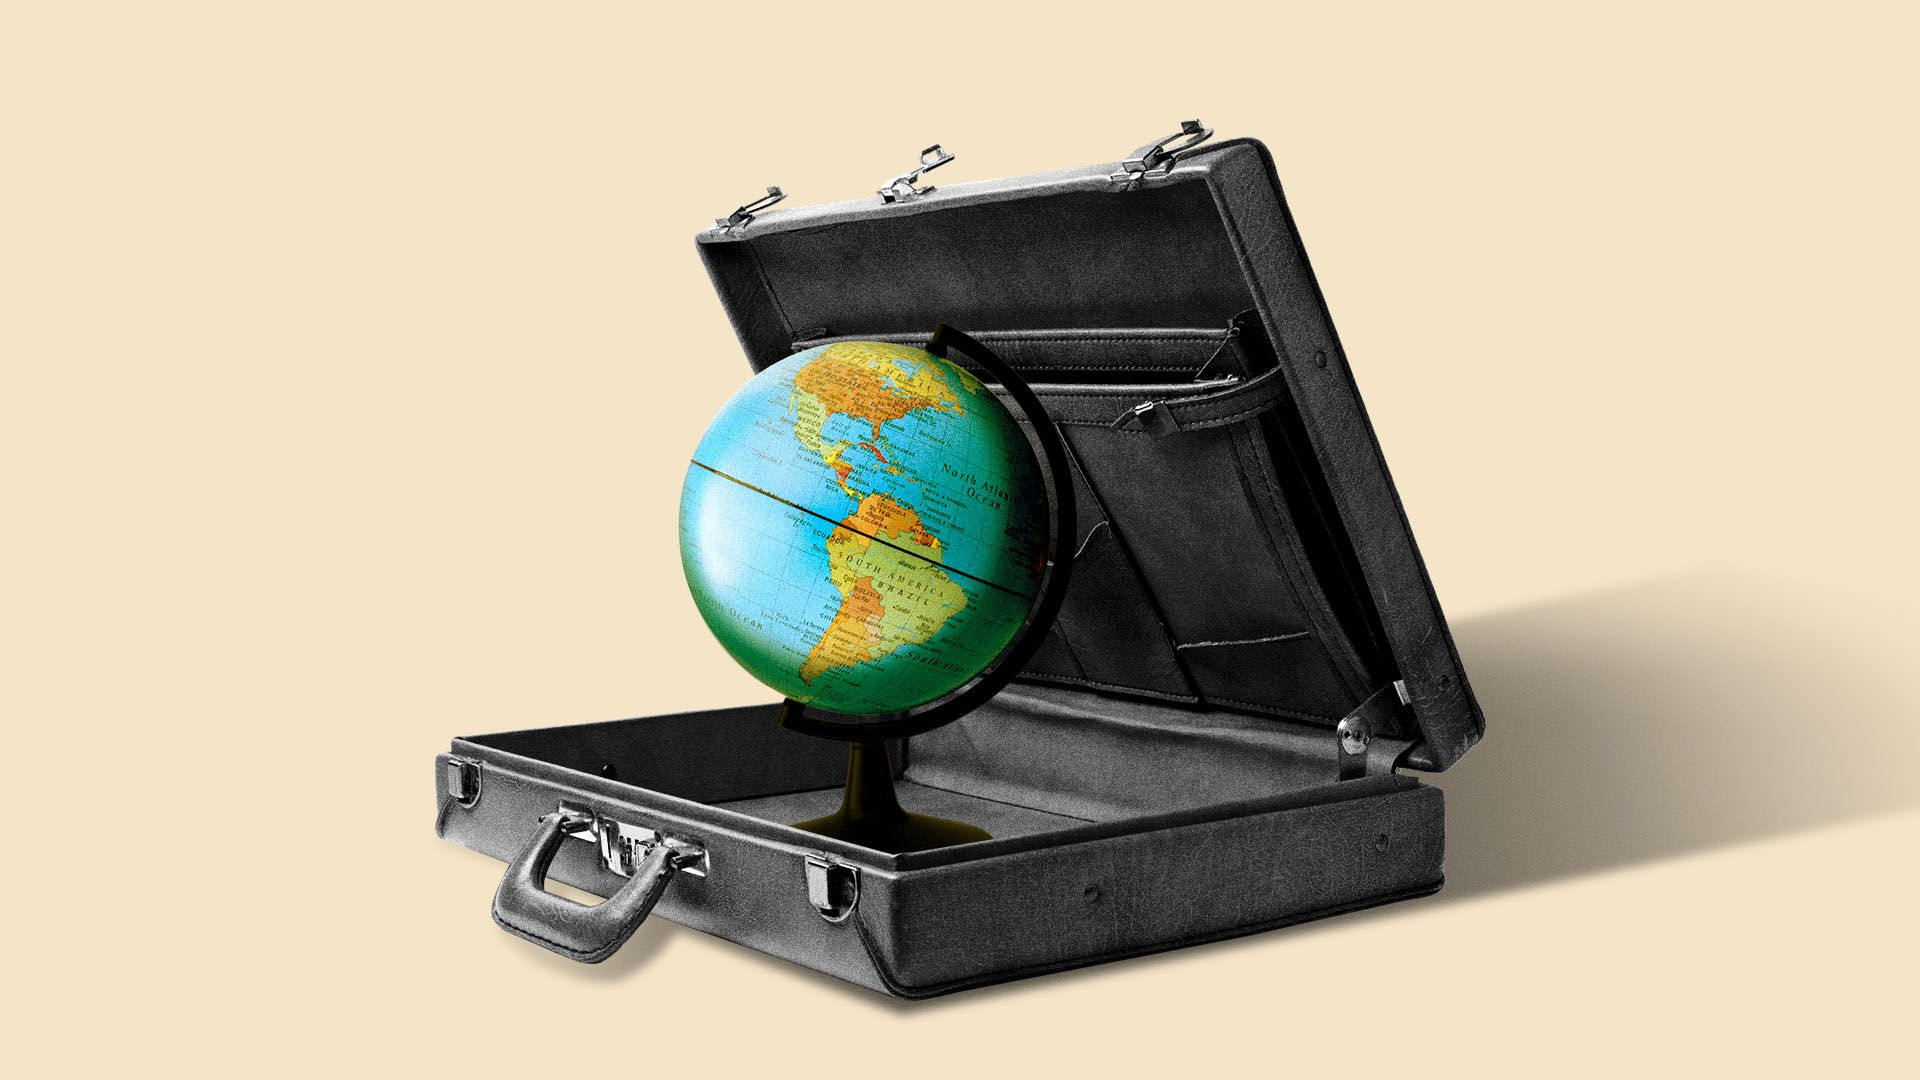 Illustration of an open briefcase with a globe inside.